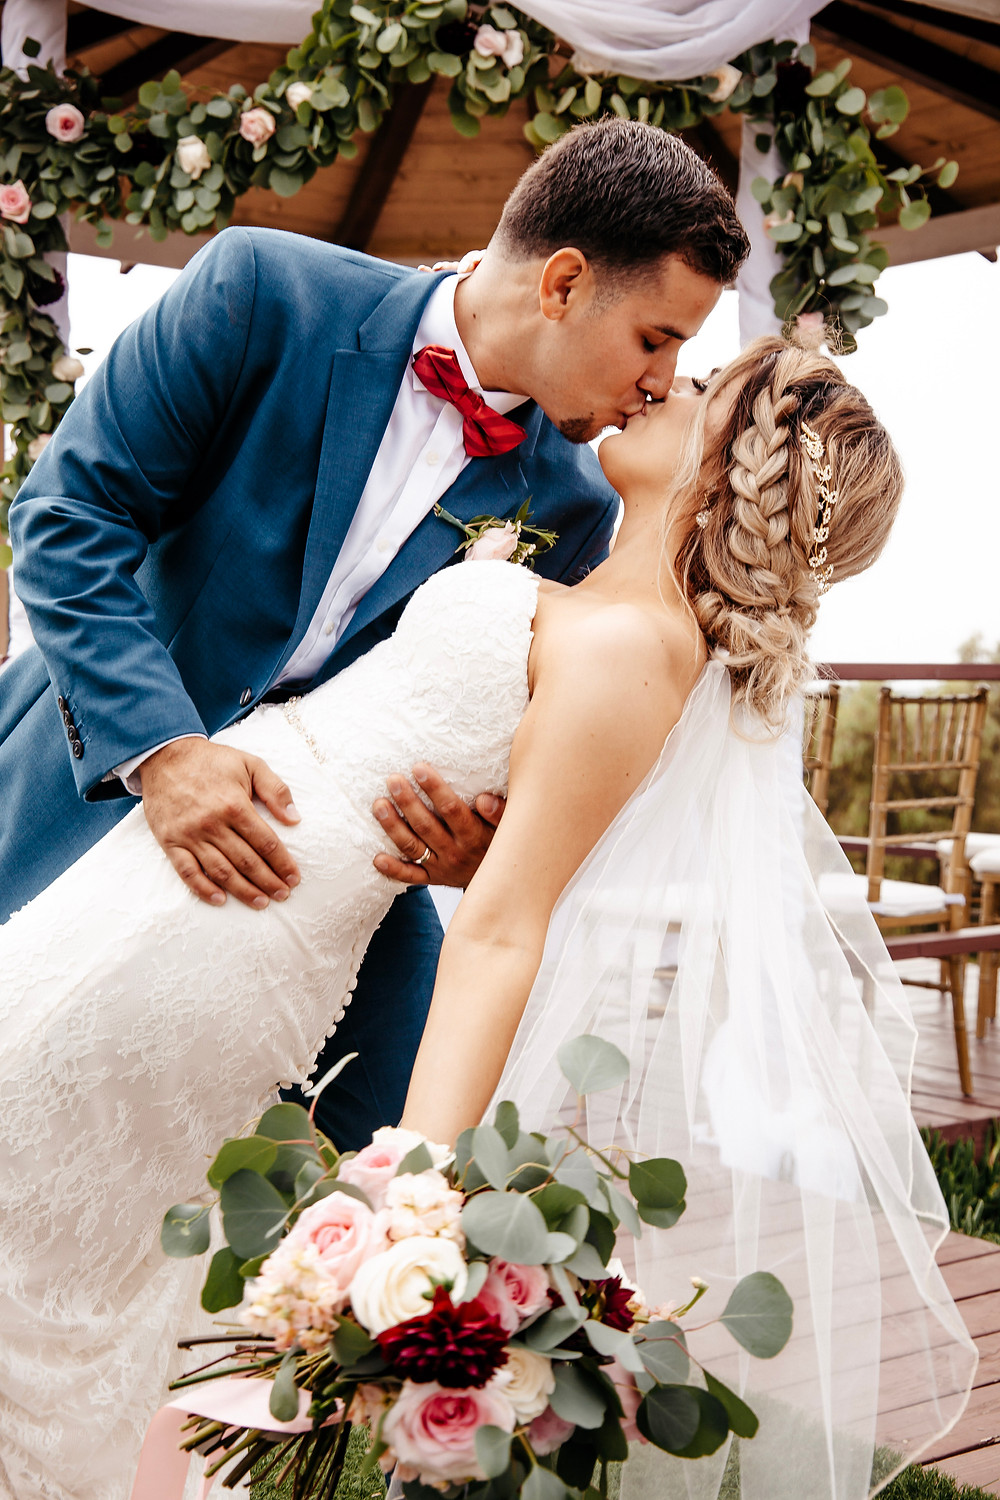 Wedding blog with answers to top questions about wedding planning in Texas, featuring romantic wedding photos and videos